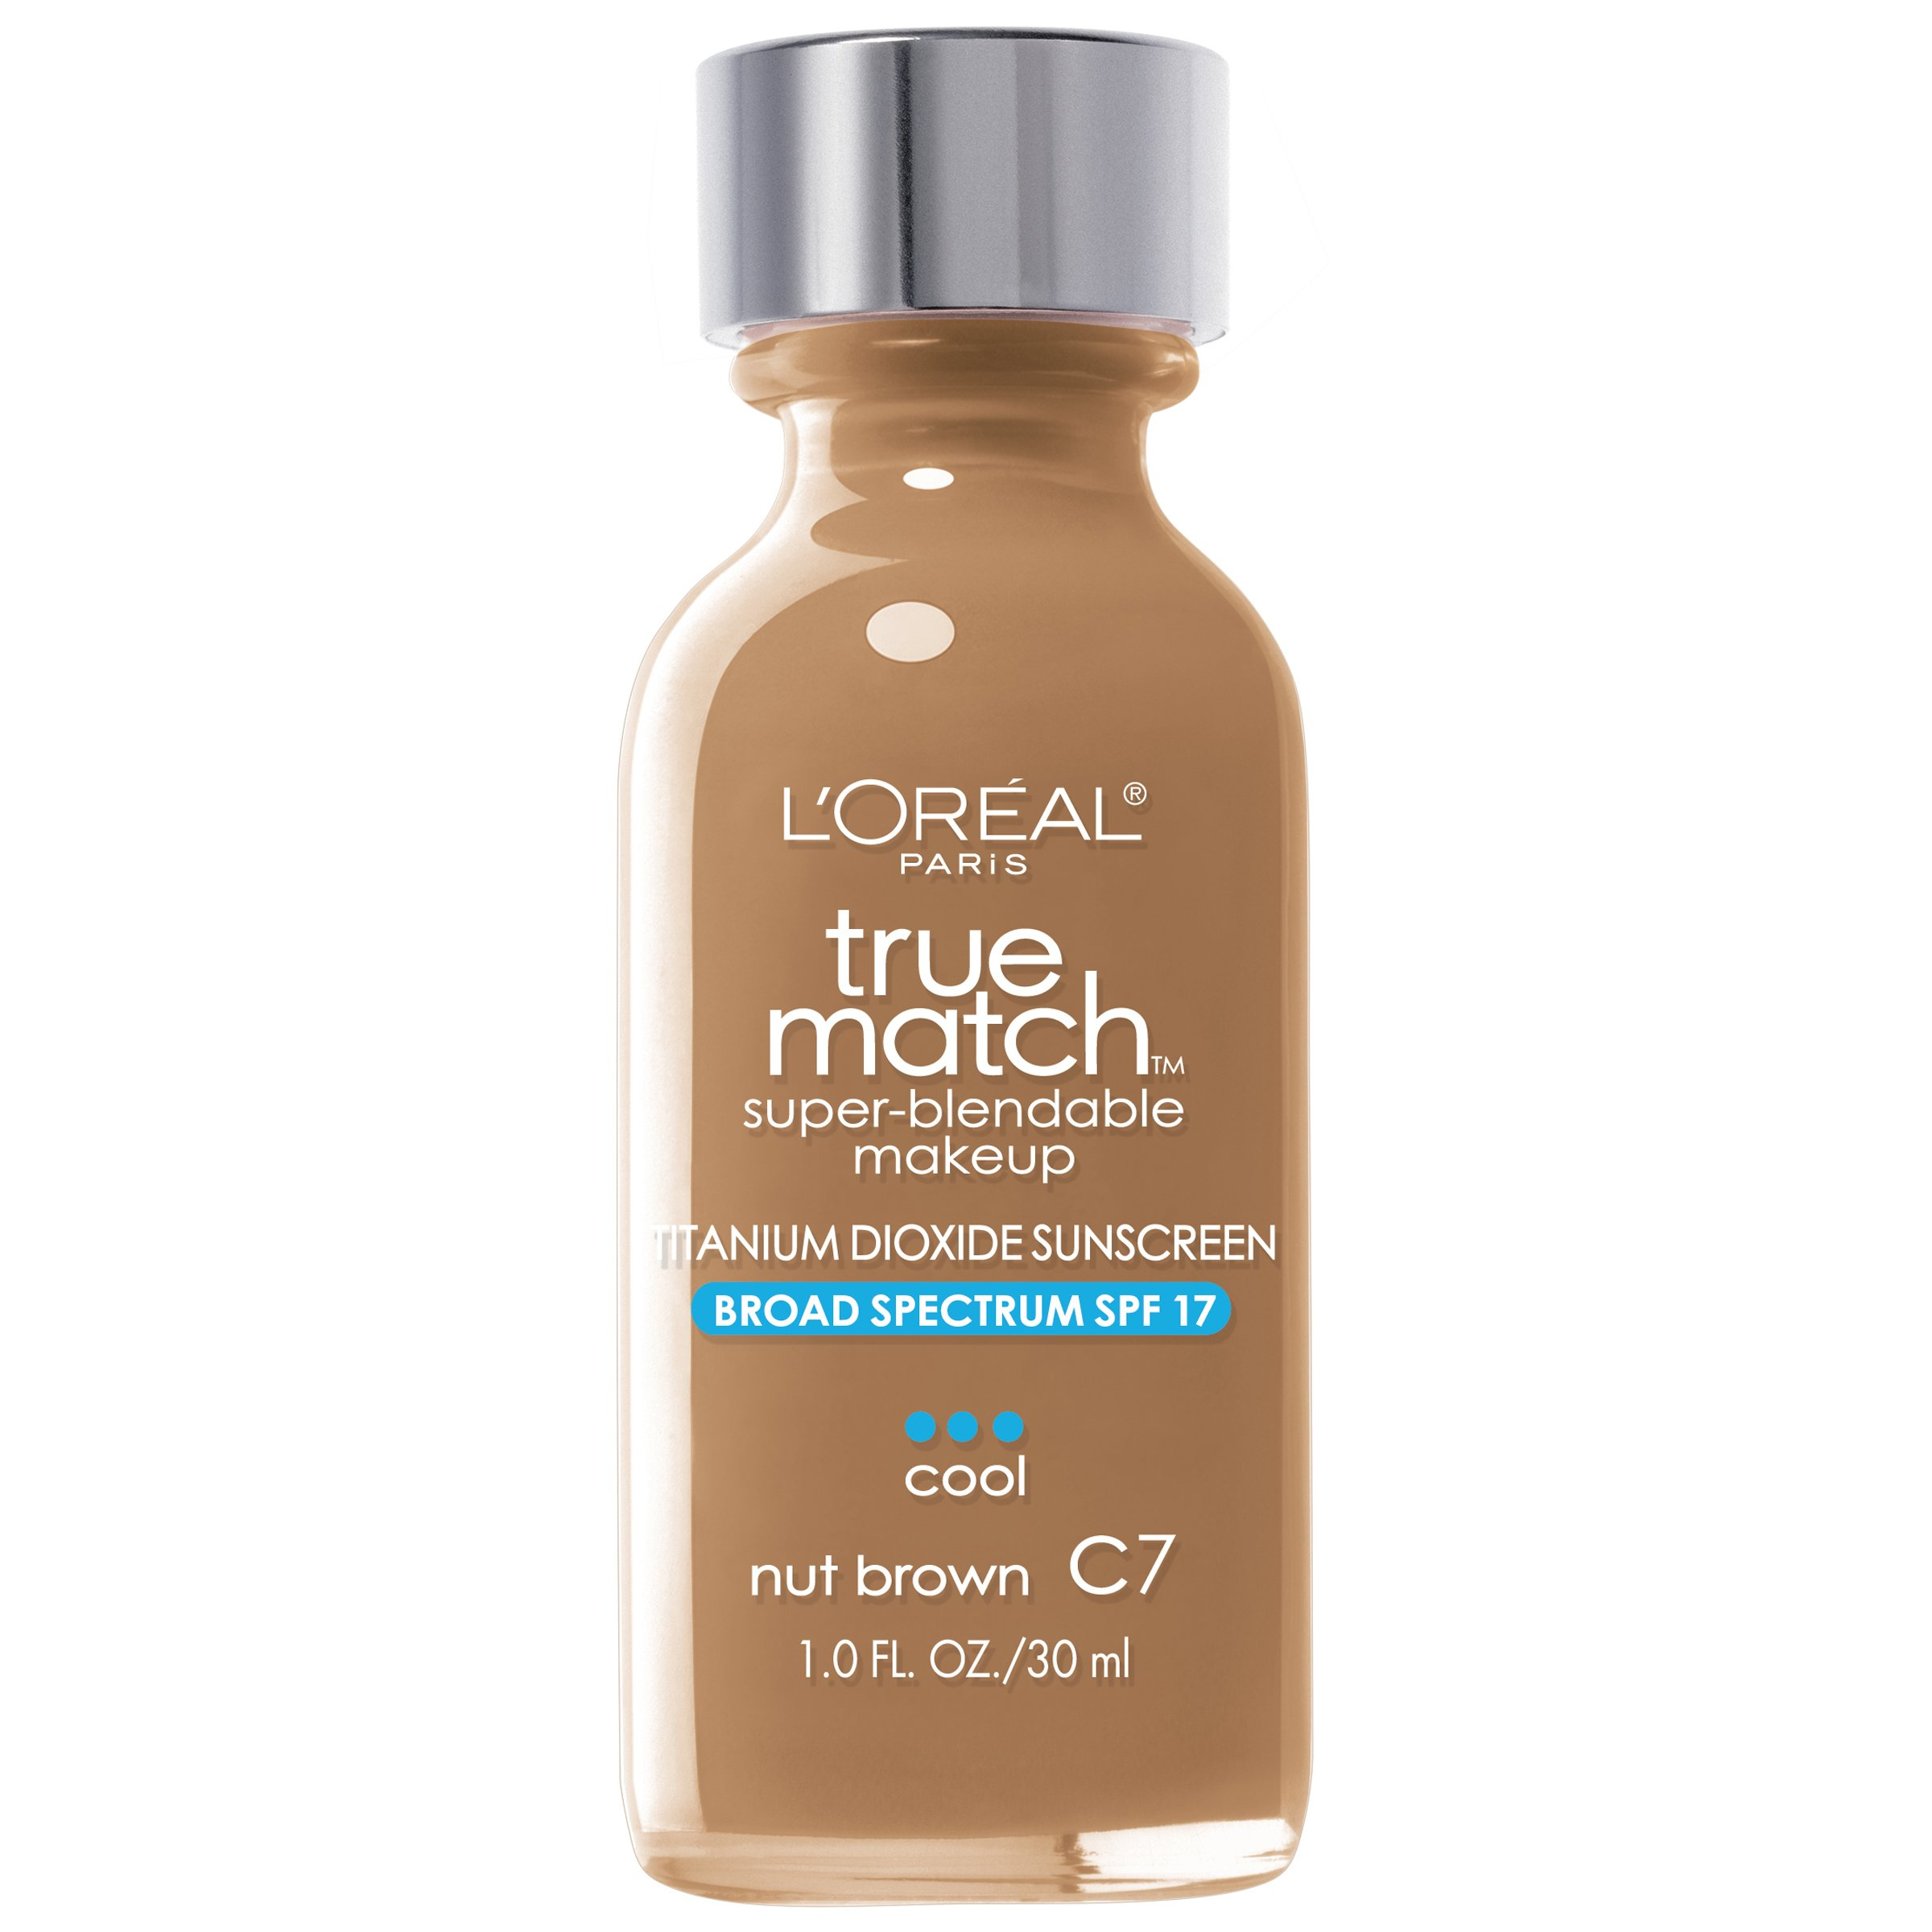 L'Oreal Paris Makeup True Match Super-Blendable Liquid Foundation, Nut Brown C7, 1 Fl Oz,1 Count